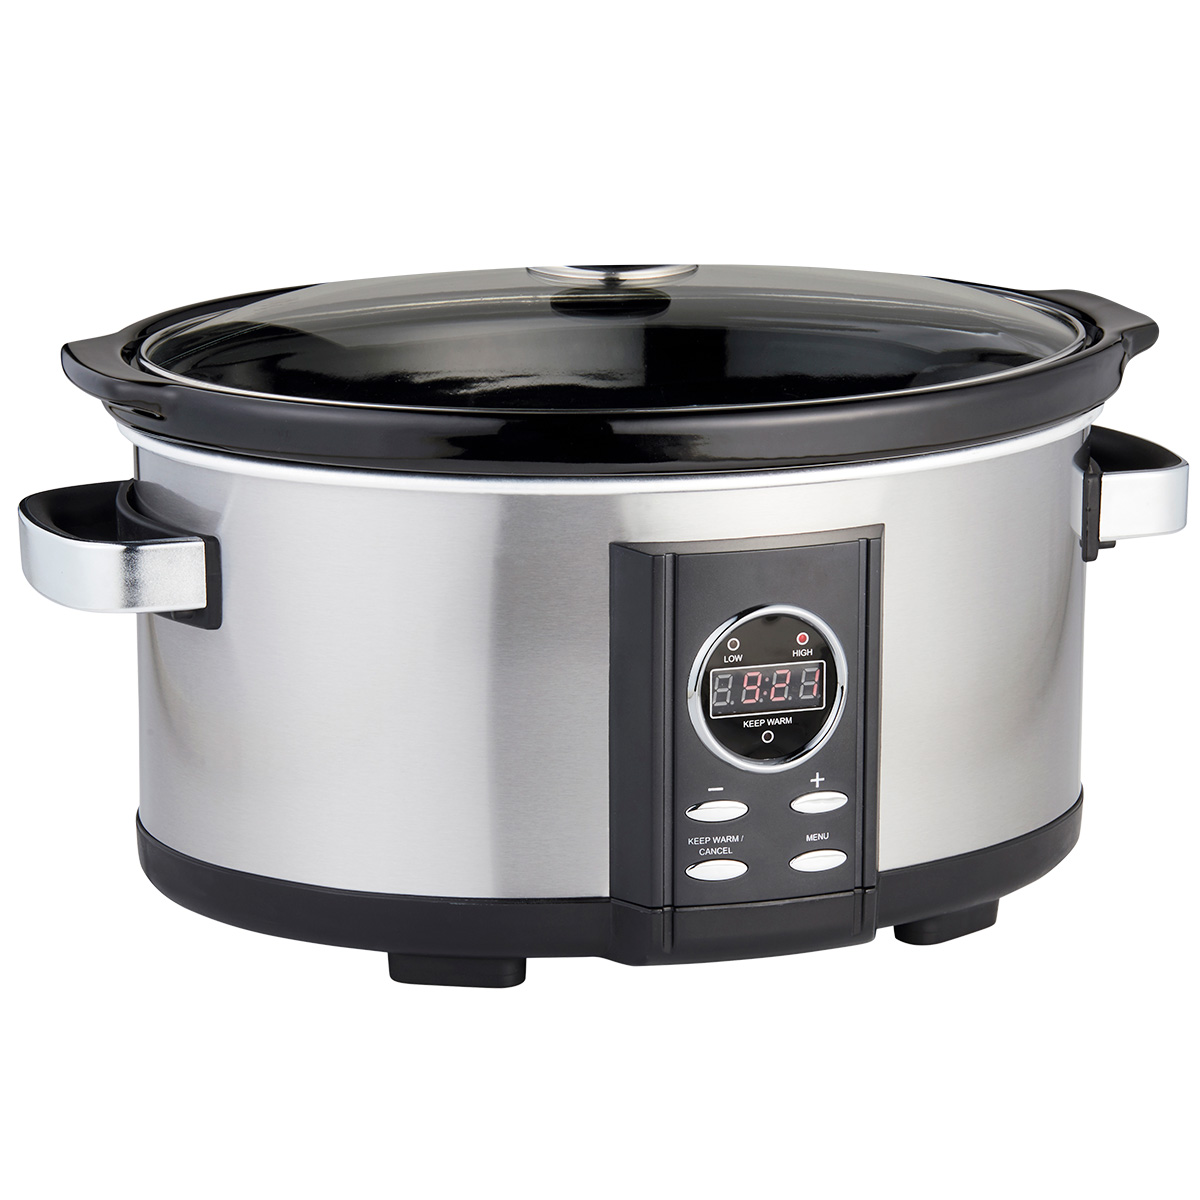 Gastronoma by Melissa slow cooker - 6,5 liter